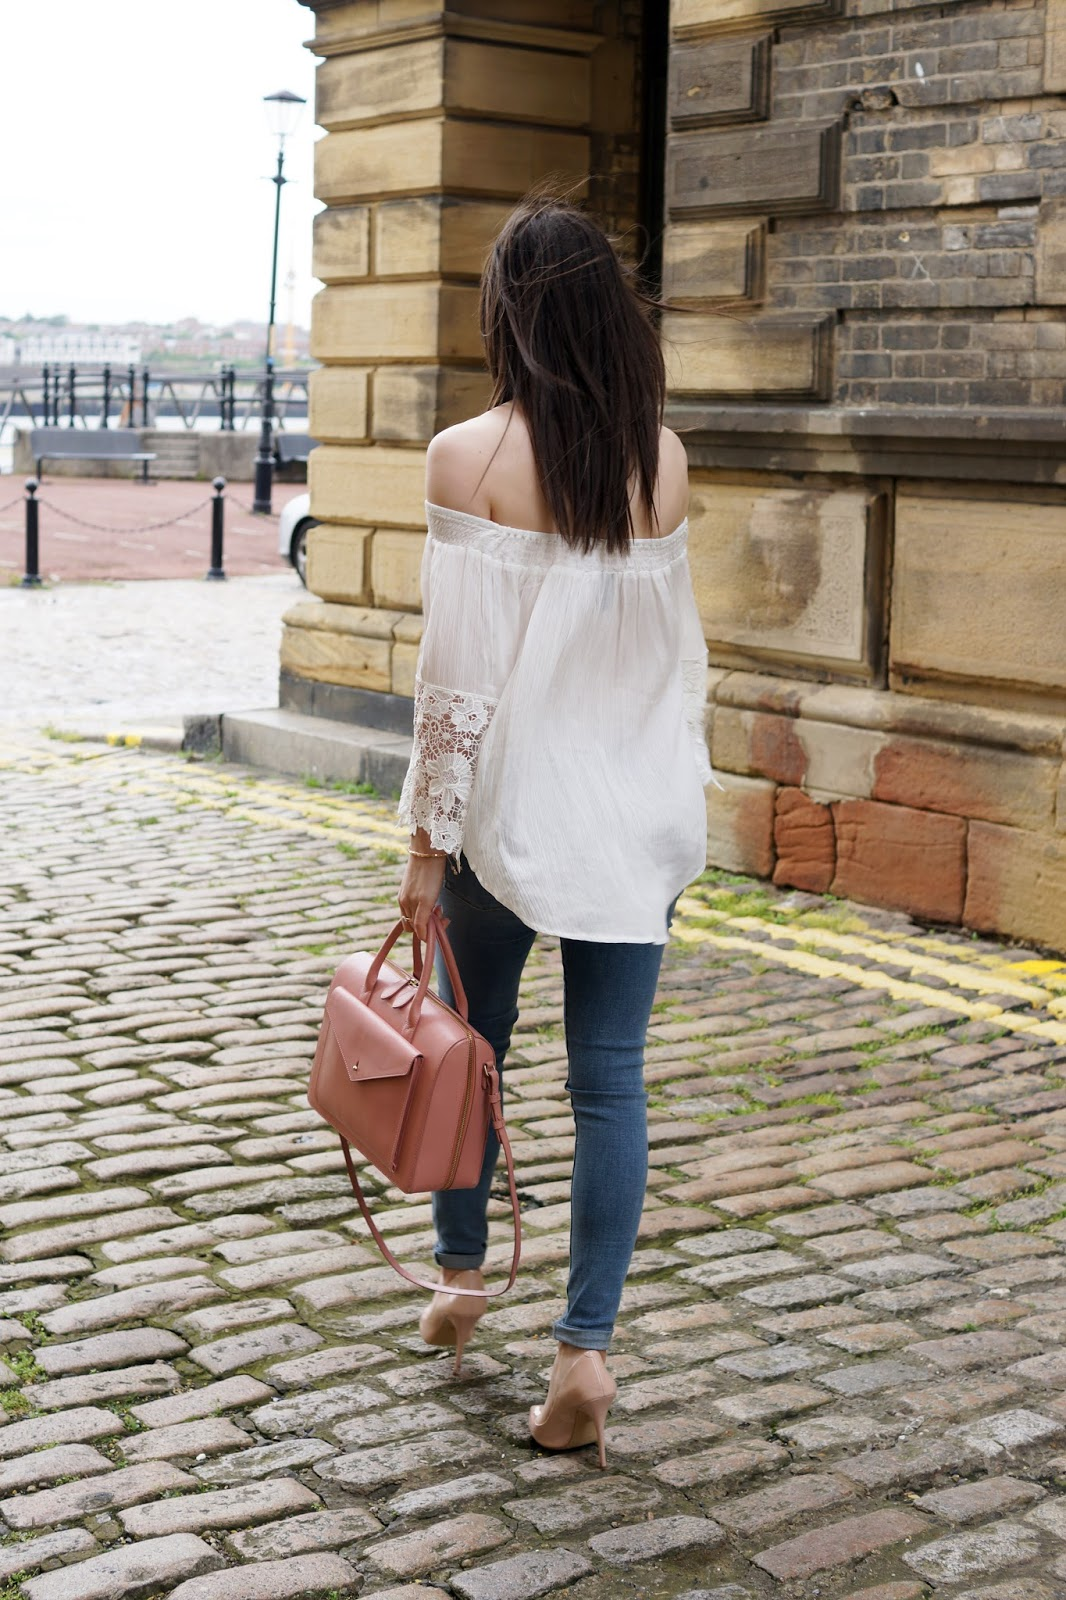 Hello Freckles Bardot Lace Sleeves Casual Outfit South Shields nebloggers Street Style